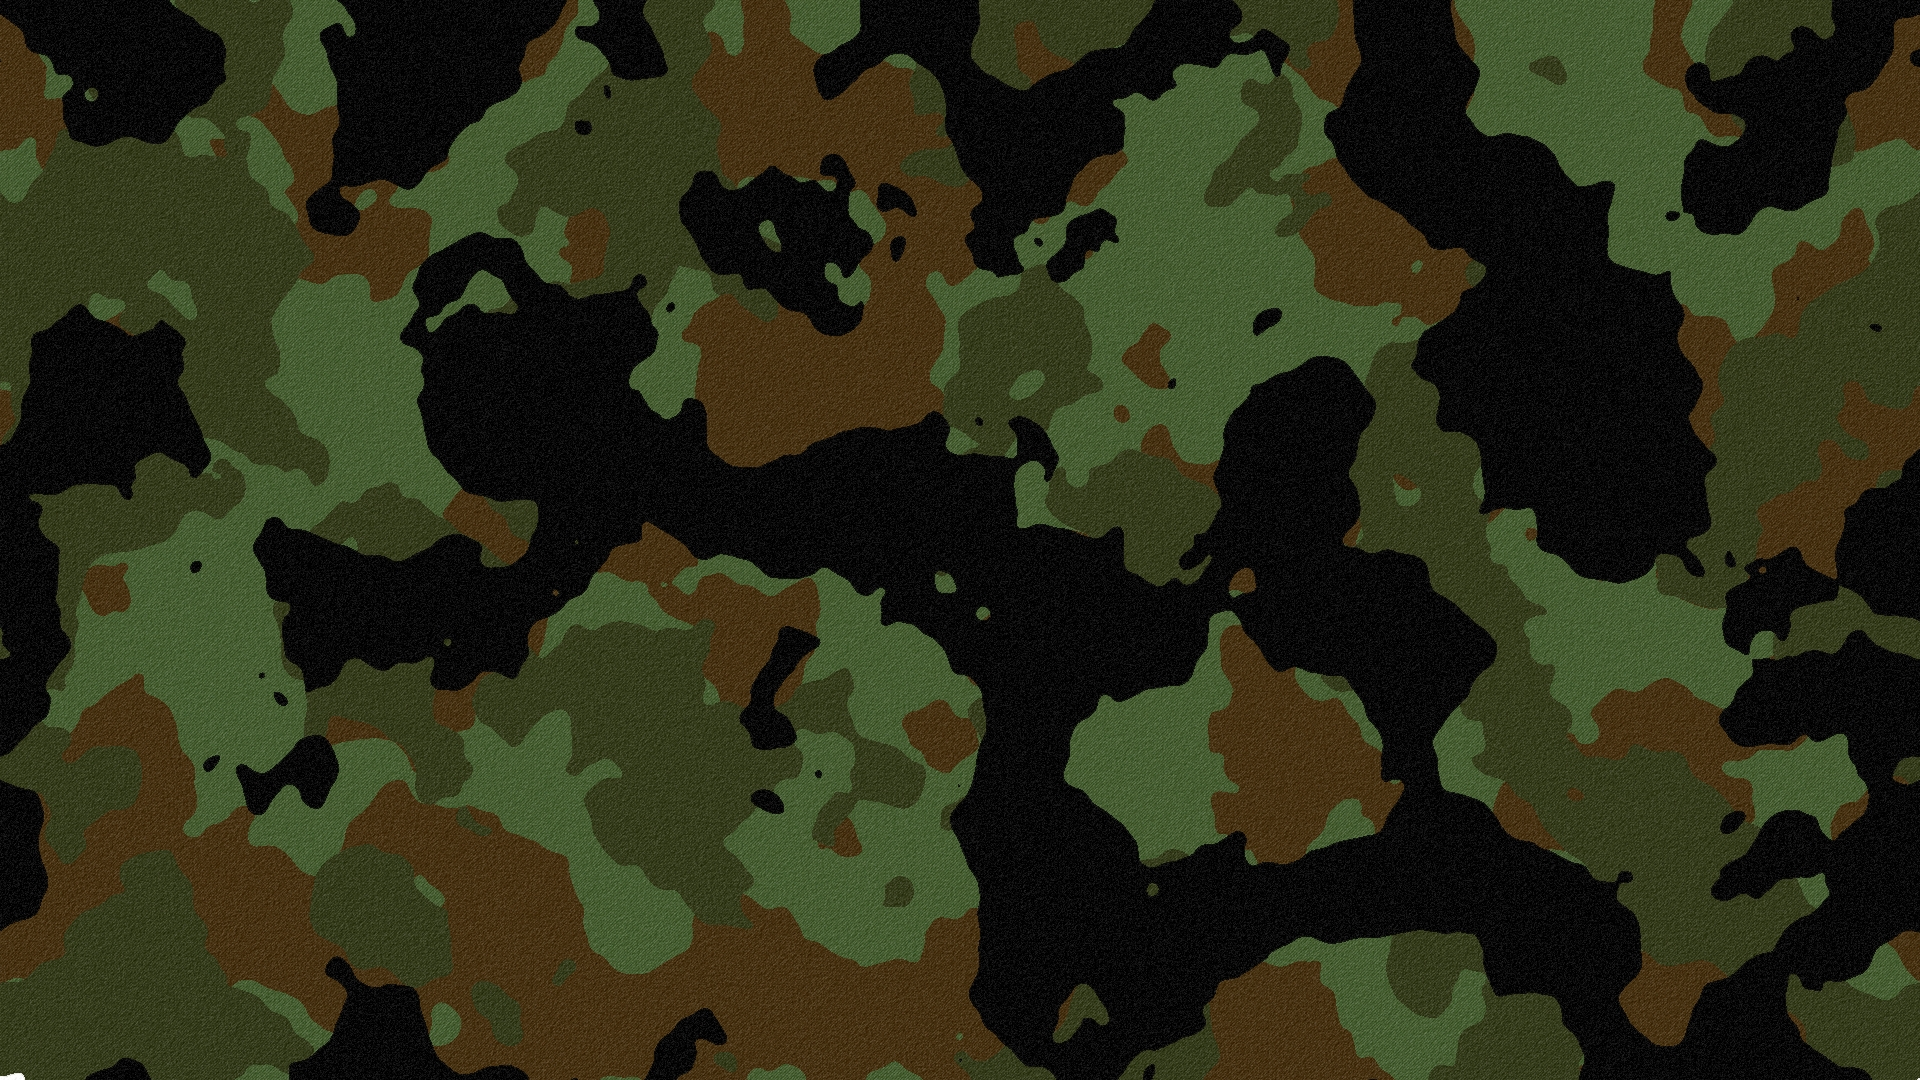 download wallpaper 1920x1080 military, background, texture, surface